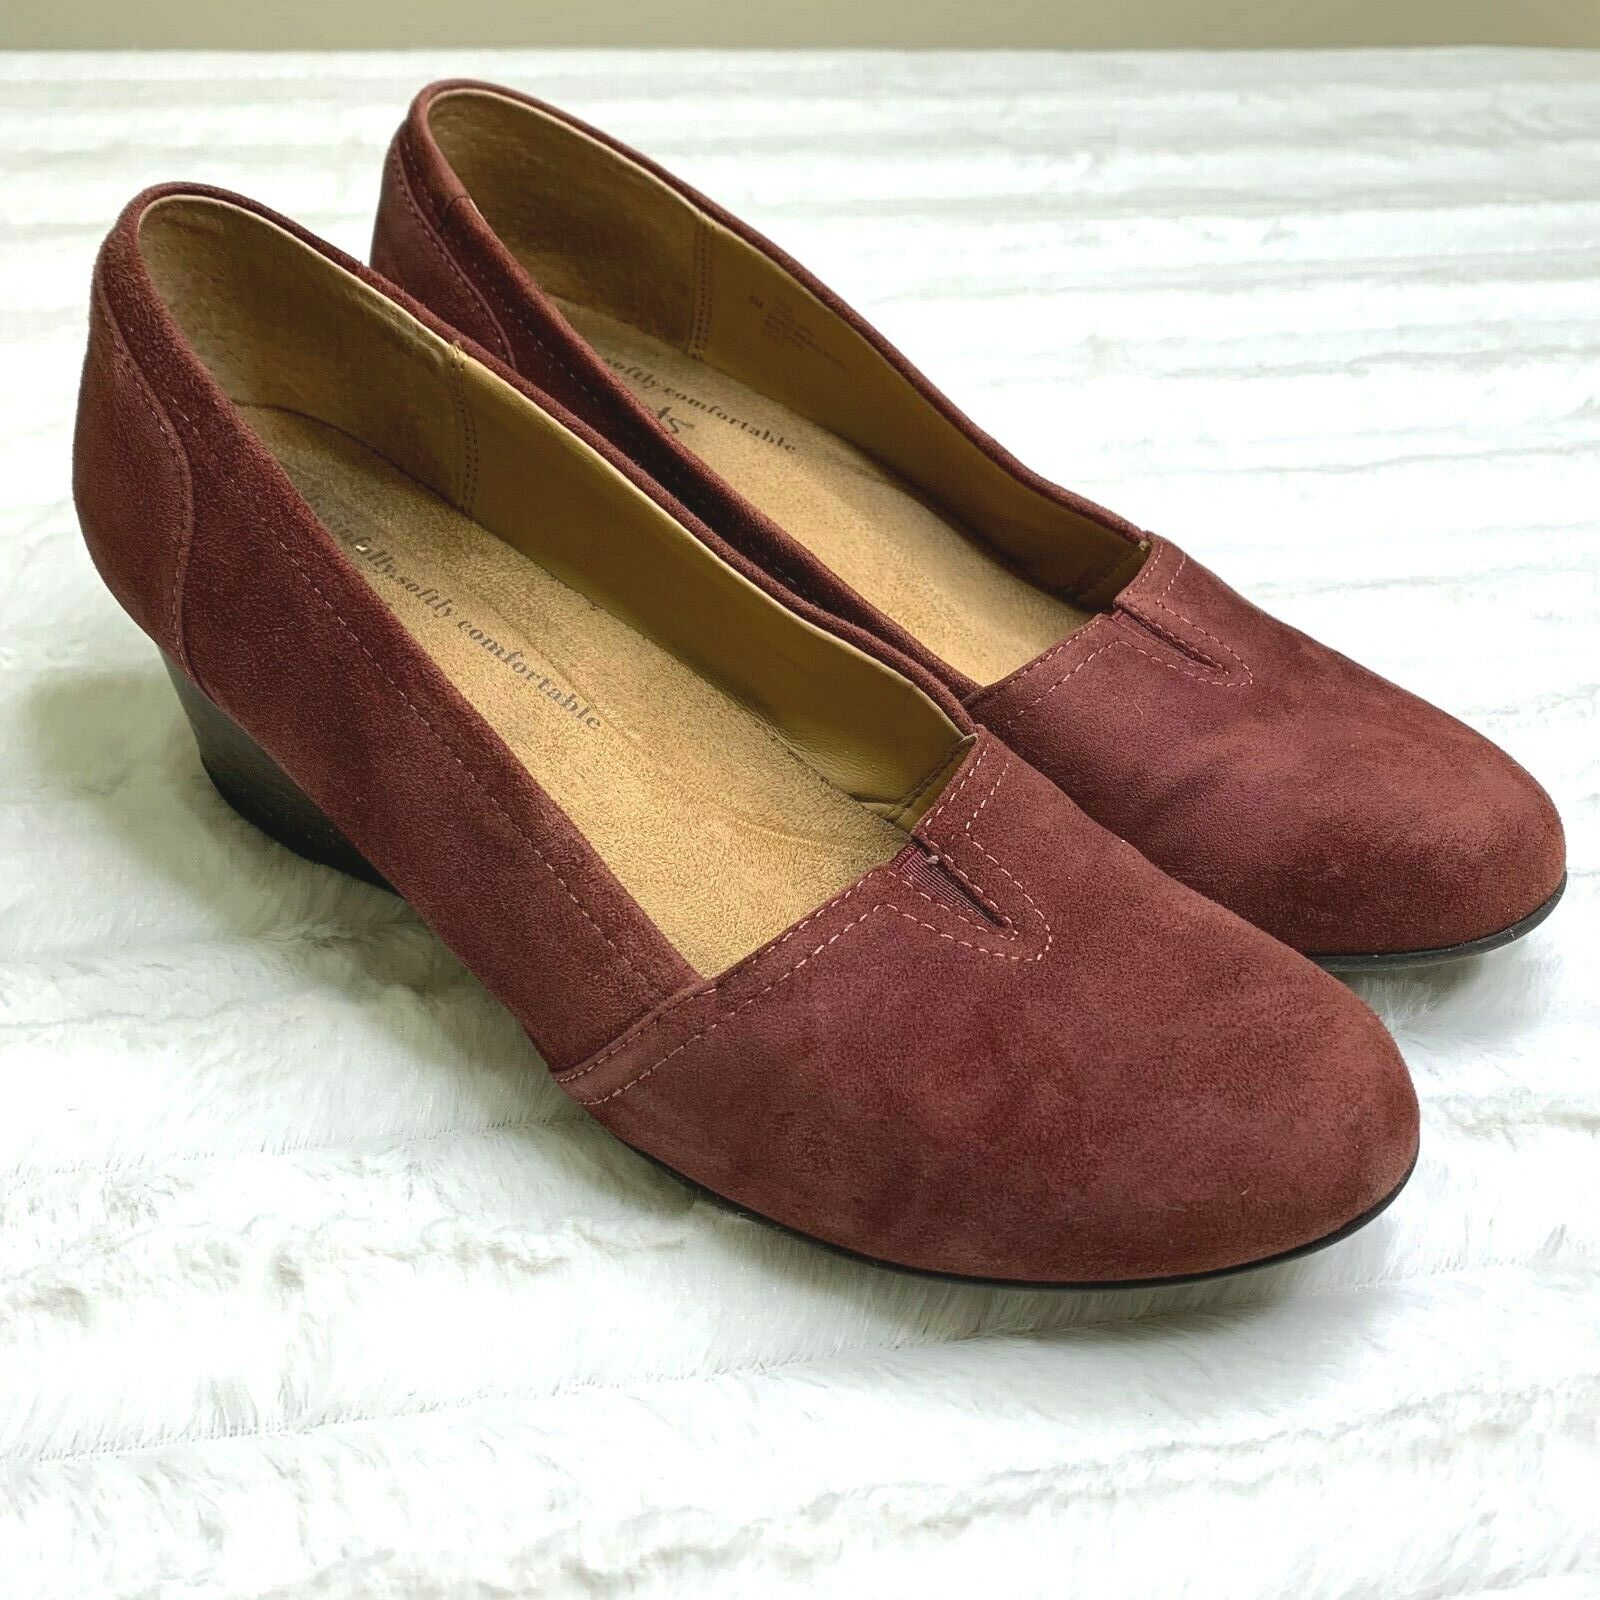 Softspots Women's Wedge Slip On Comfort Shoes Leather Maroon Padded Insoles Sz 8